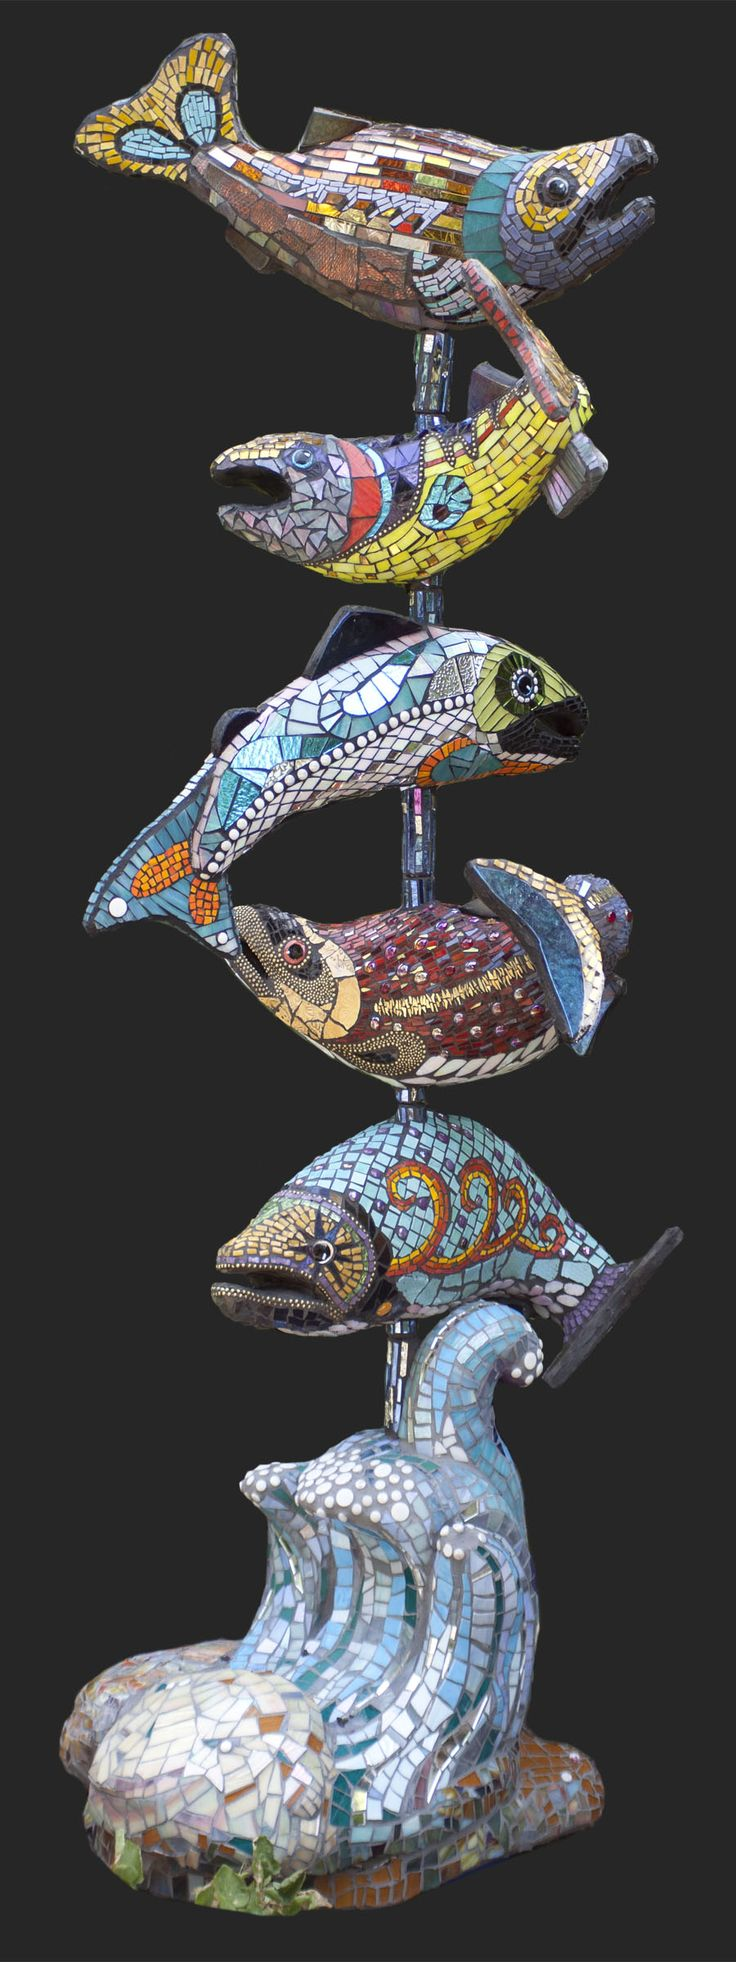 6' Salmon Totem Sculpture by katherineengland.com